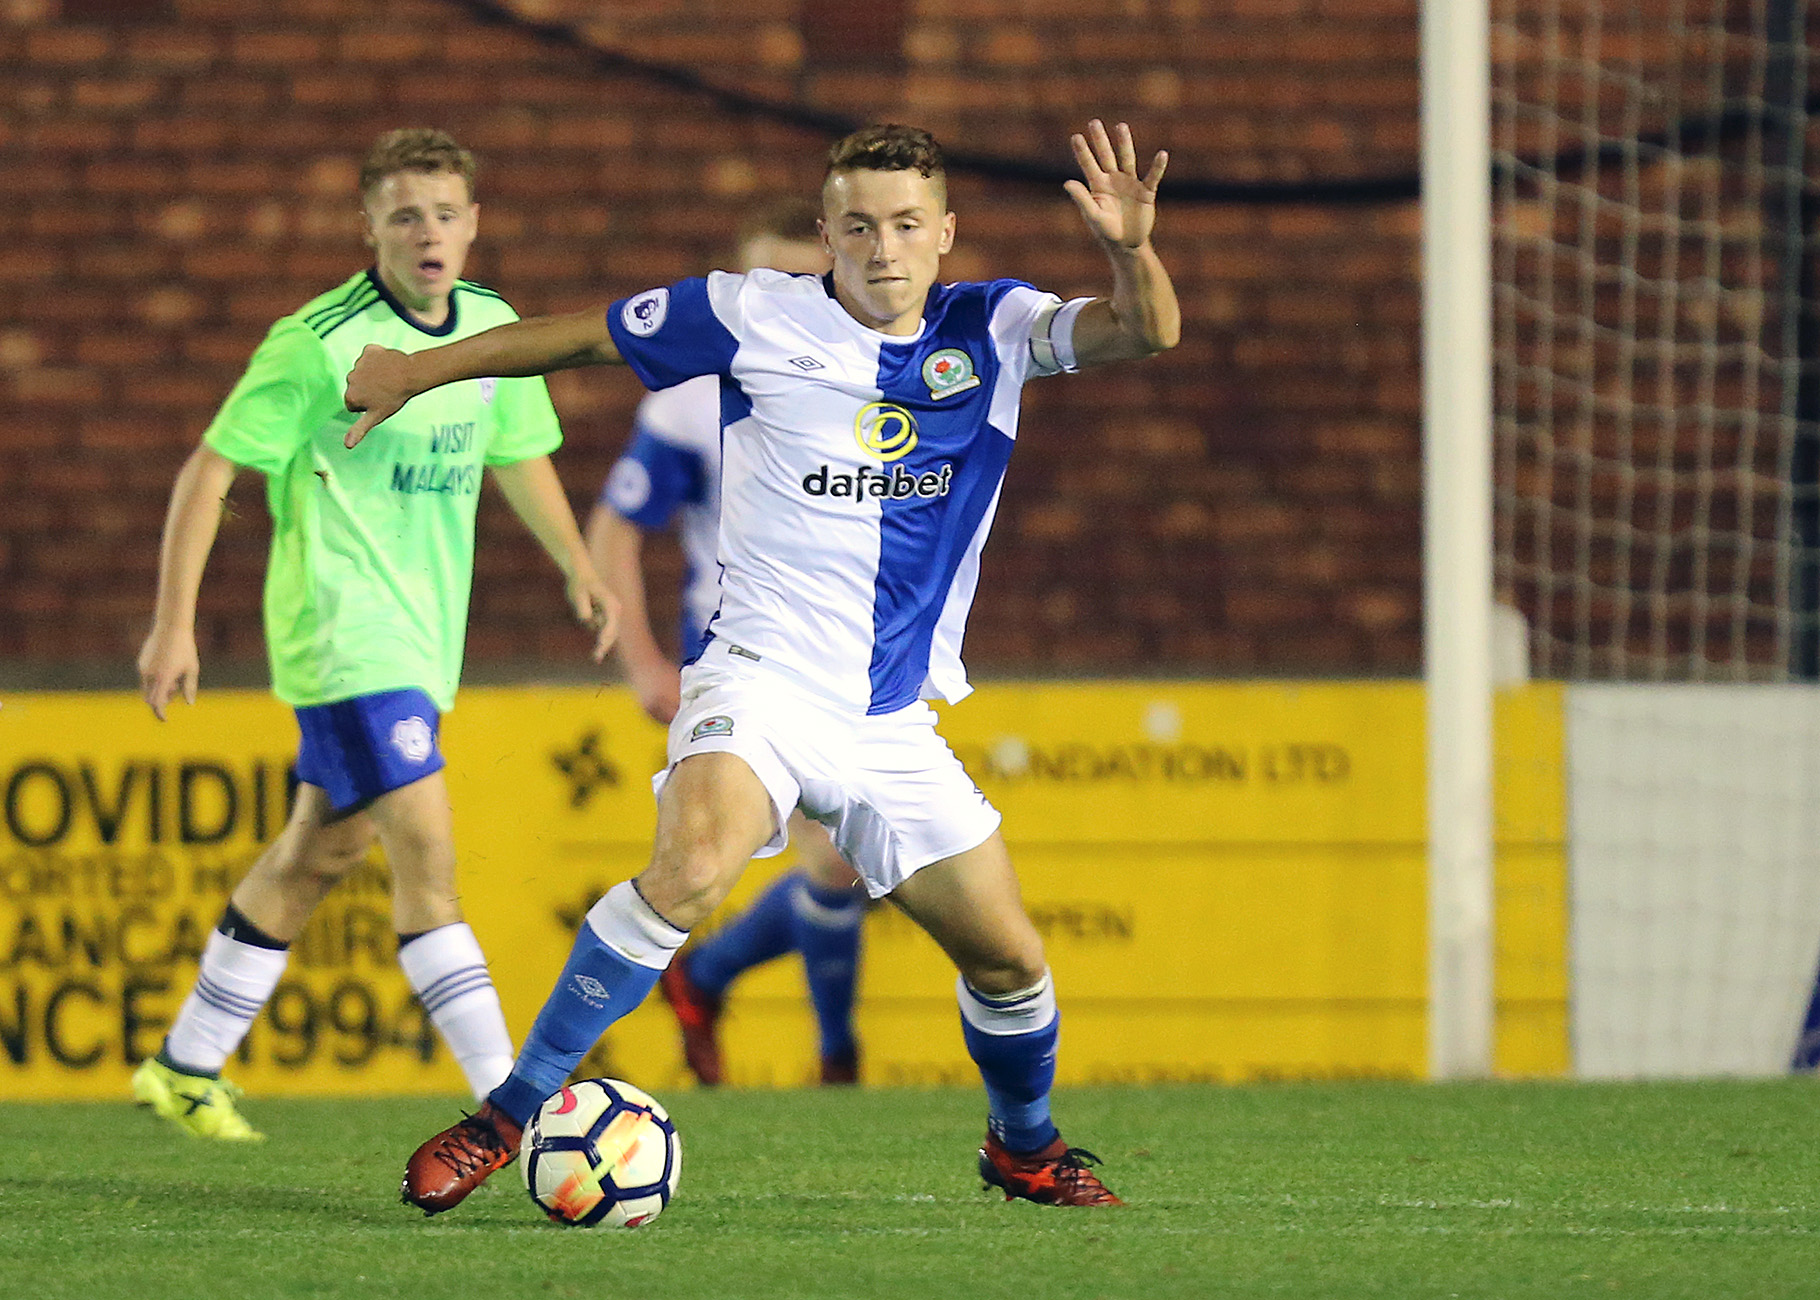 Lewis Hardcastle has been a regular for Rovers Under-23s in recent years